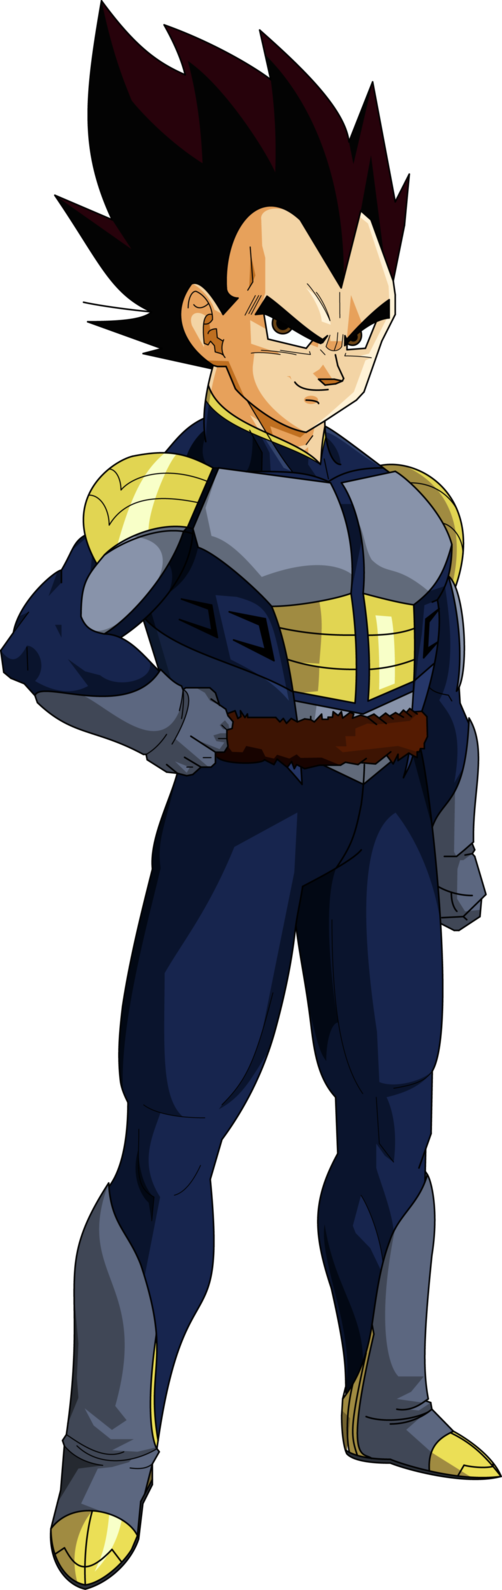 Here Is Krillin In His Saiyan Armor On Namek Vectored From